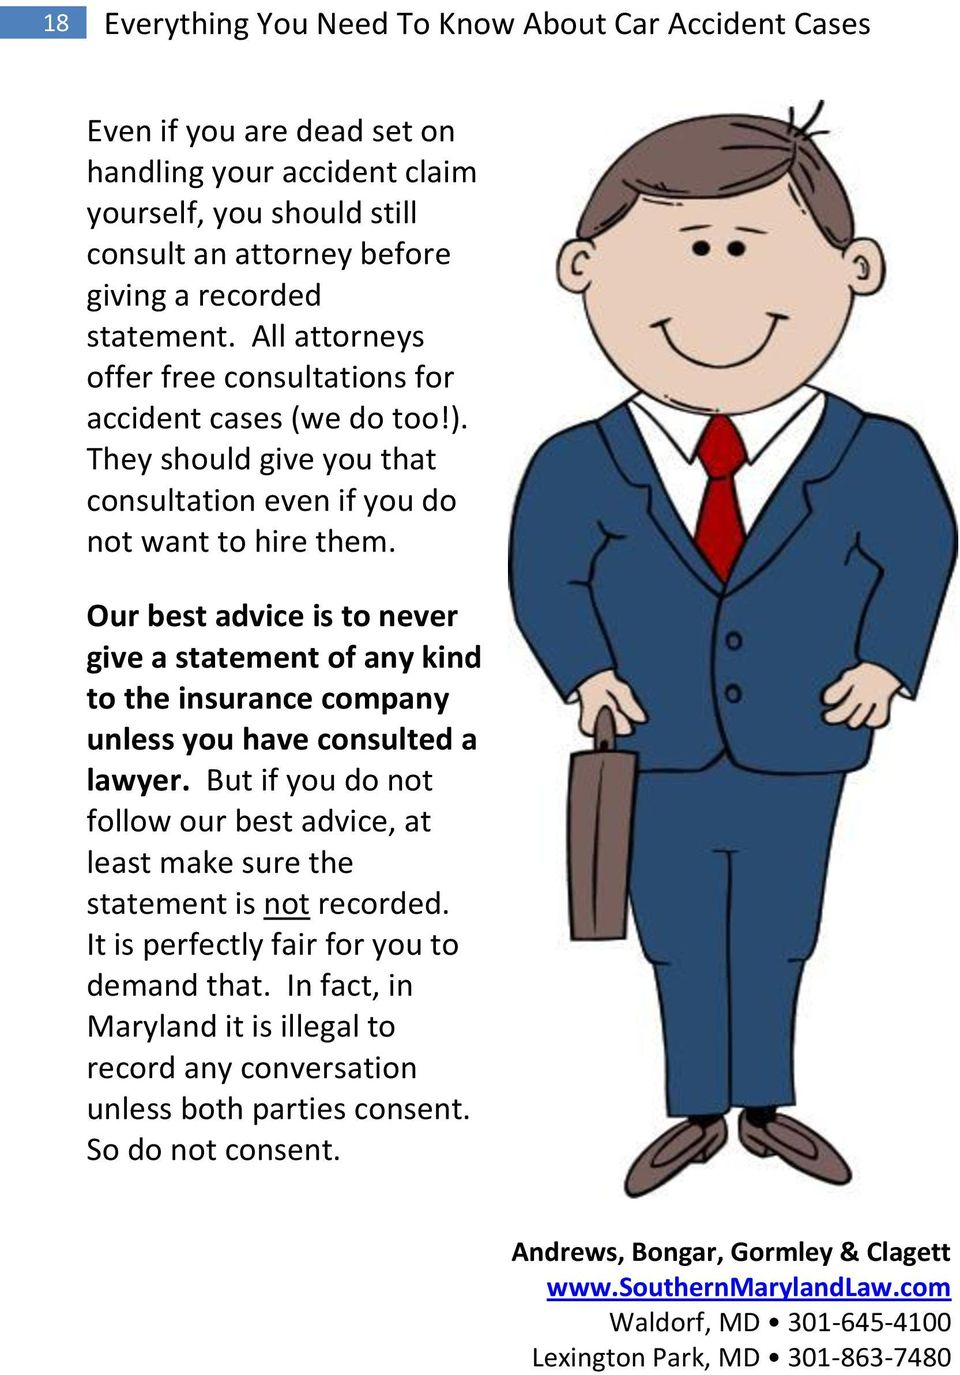 Our best advice is to never give a statement of any kind to the insurance company unless you have consulted a lawyer.